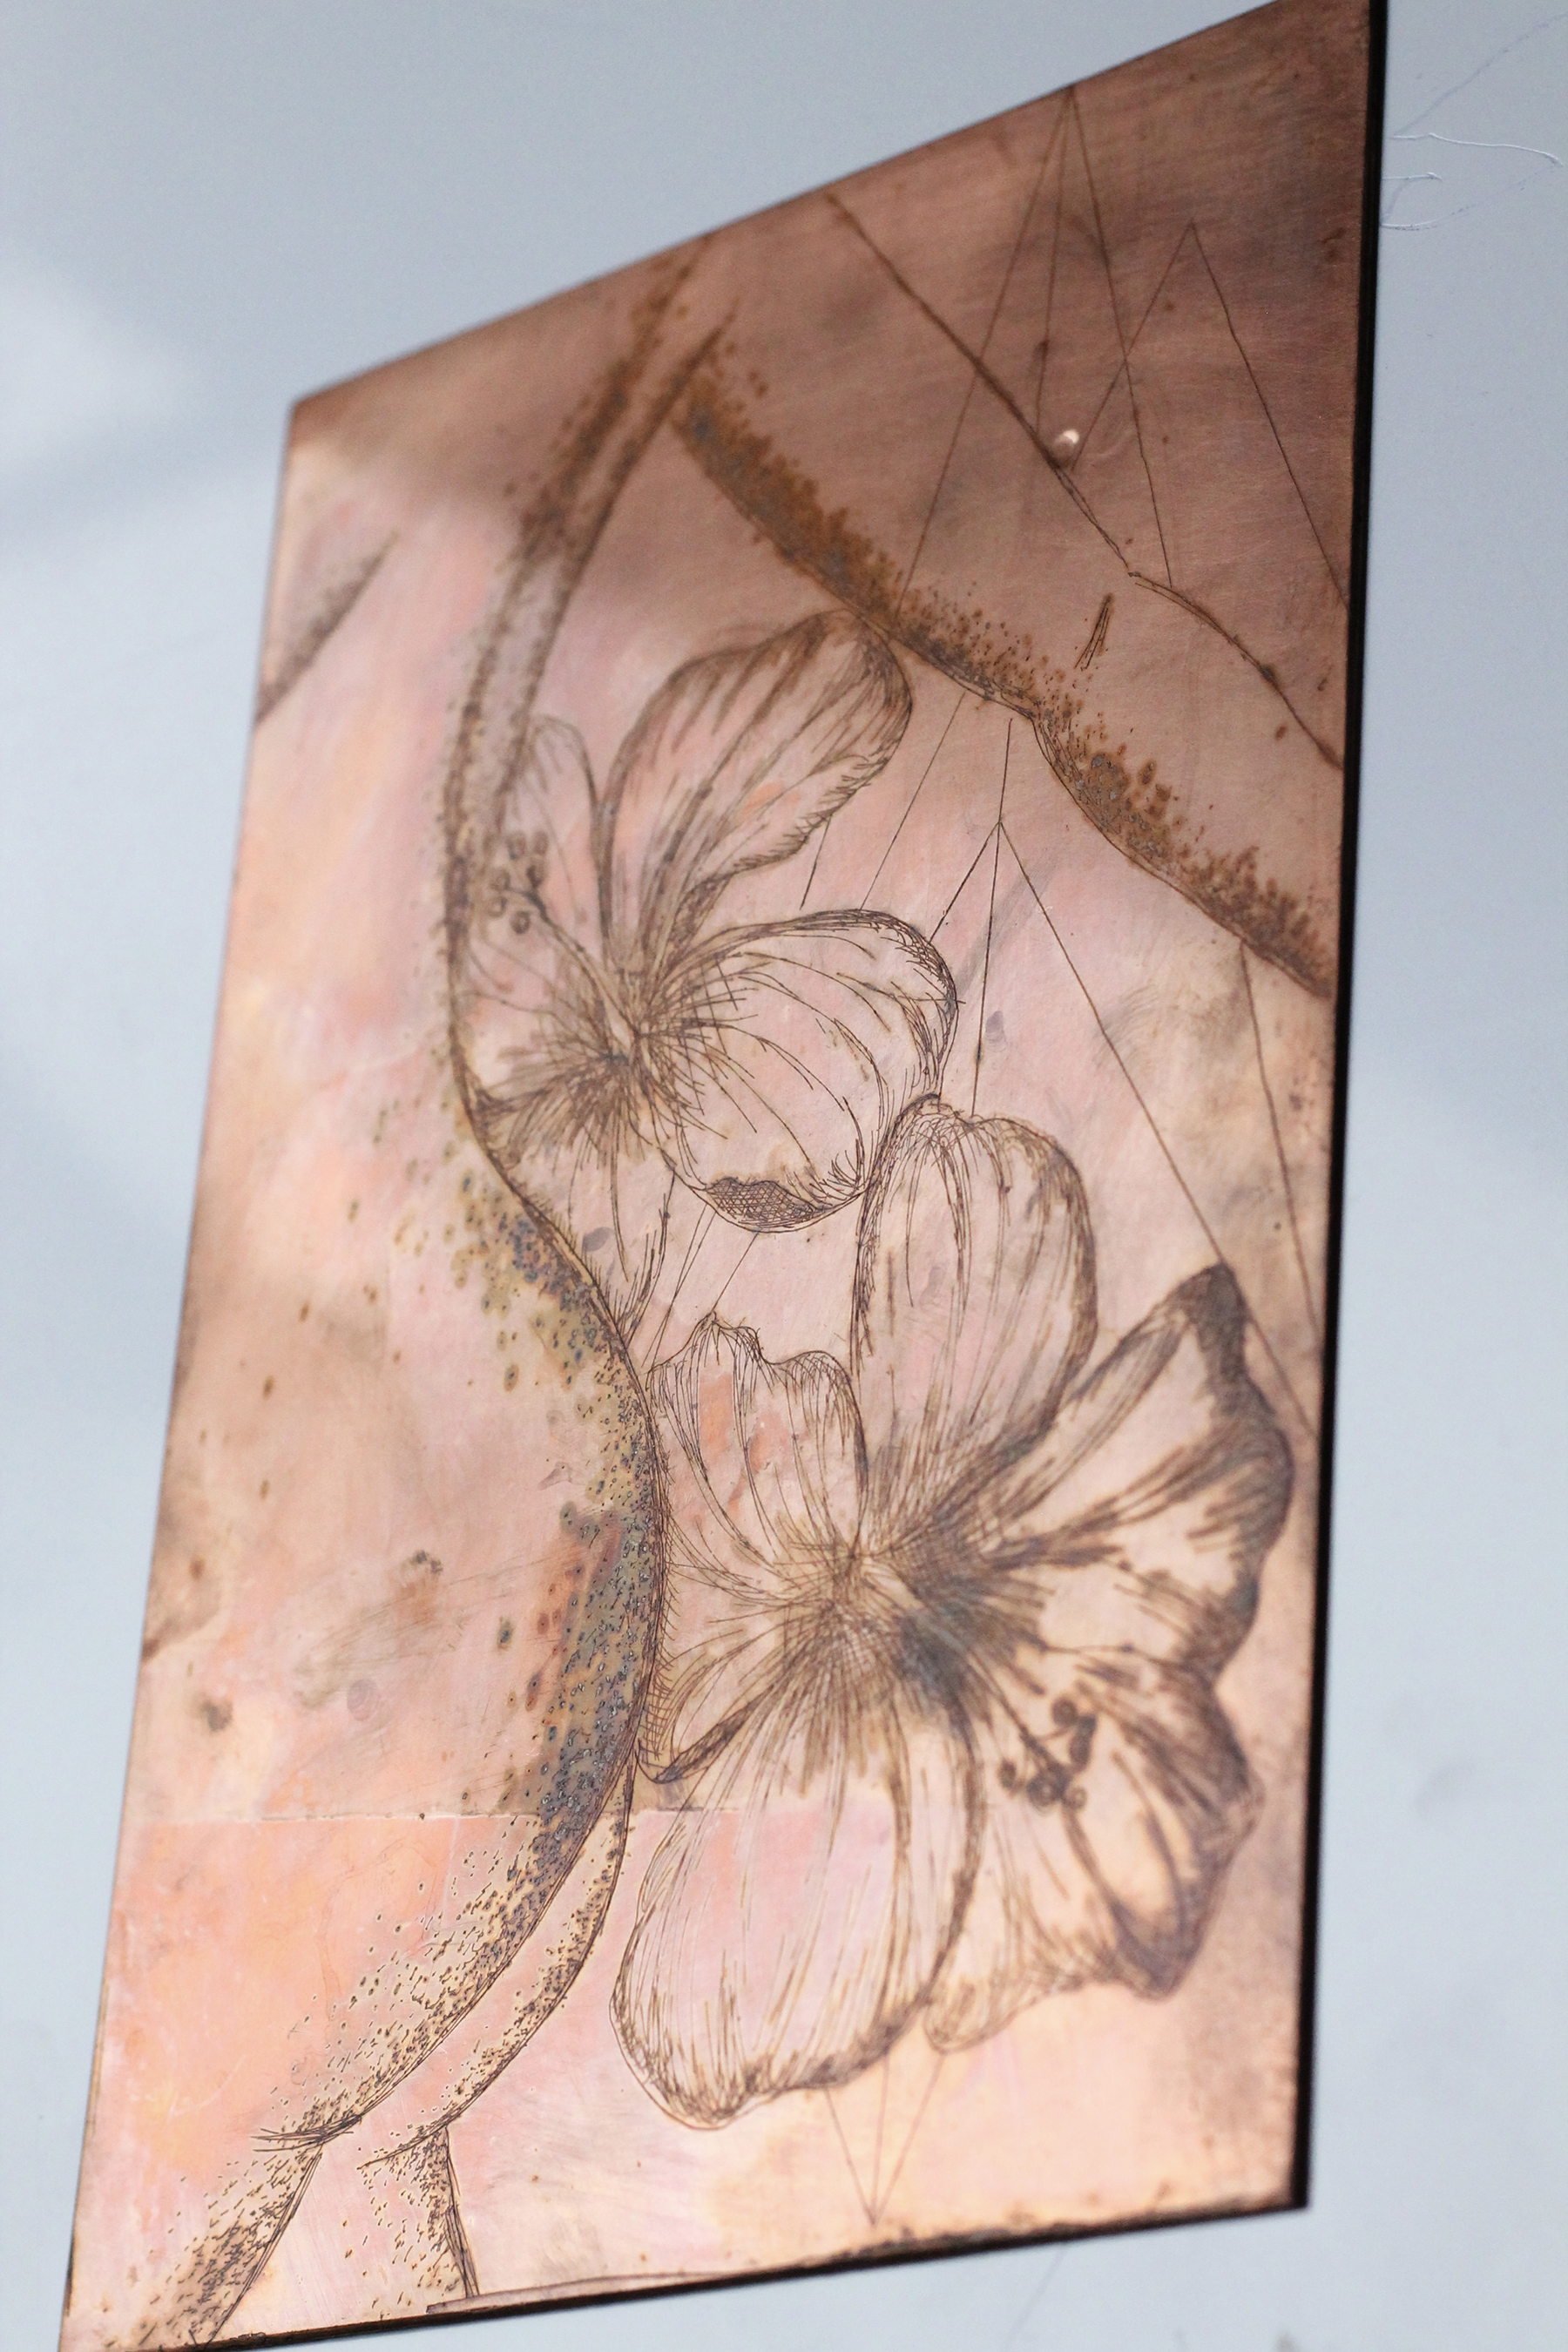 Etched copper plate for intaglio printing.